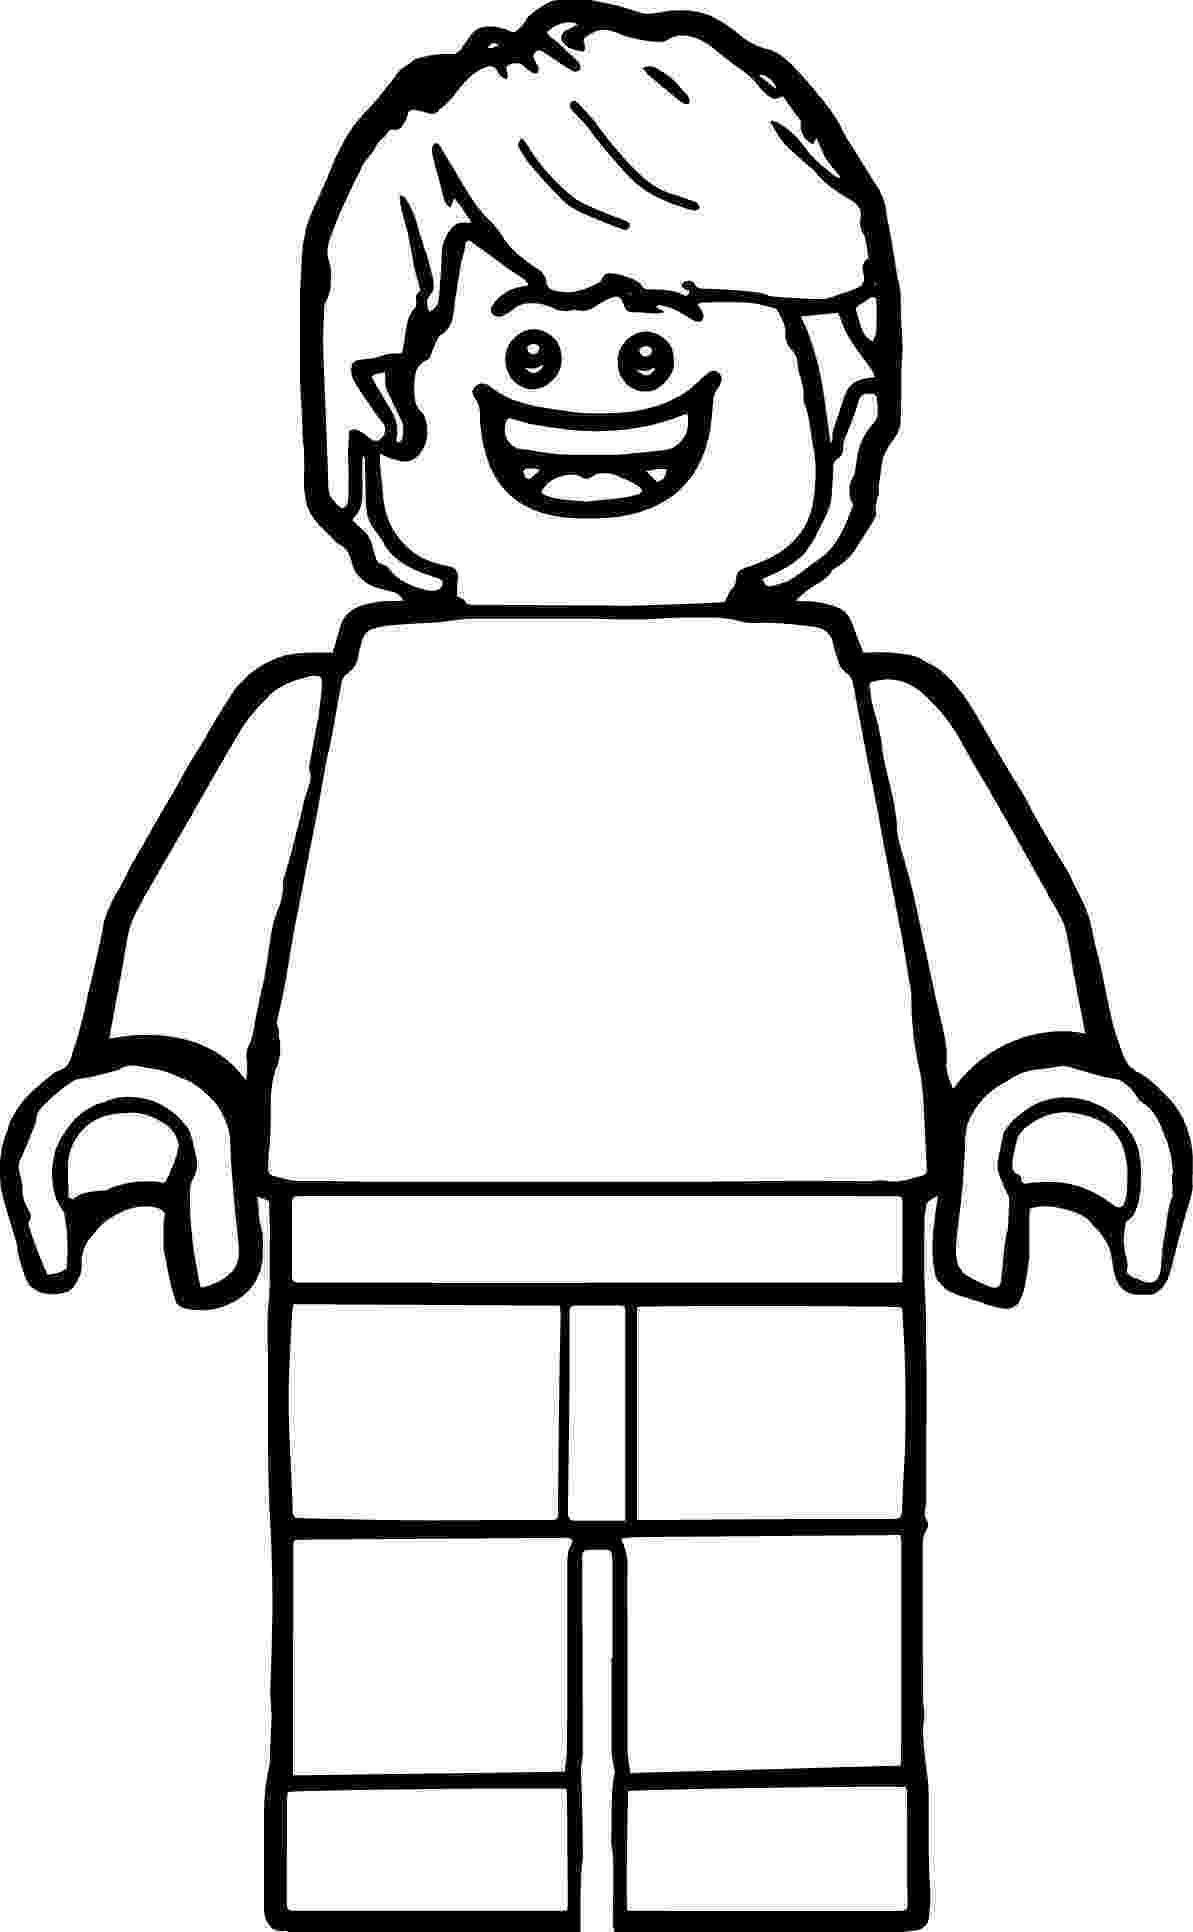 lego figure coloring pages free coloring pages printable pictures to color kids lego figure coloring pages 1 1